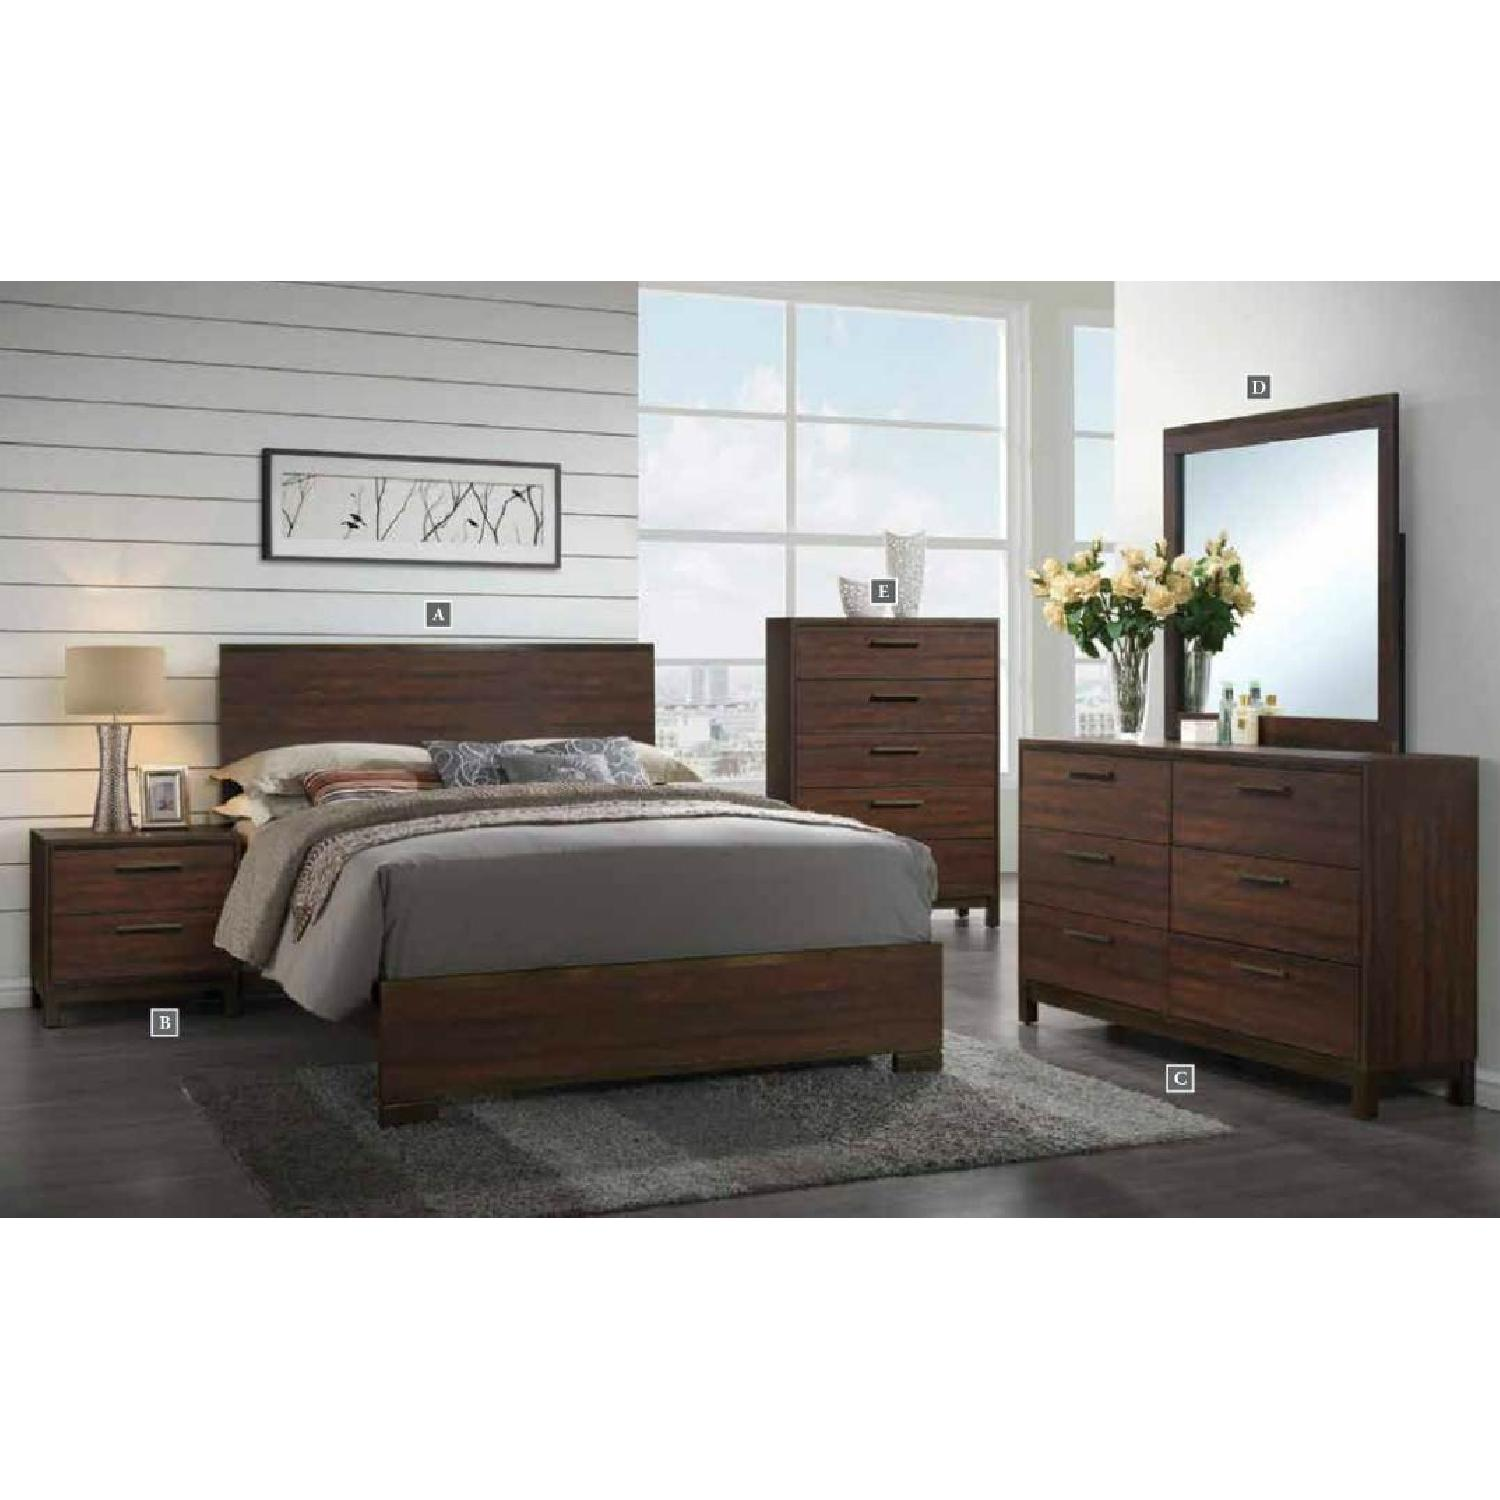 Modern 5-Drawer Chest in Rustic Tobacco Finish - image-2